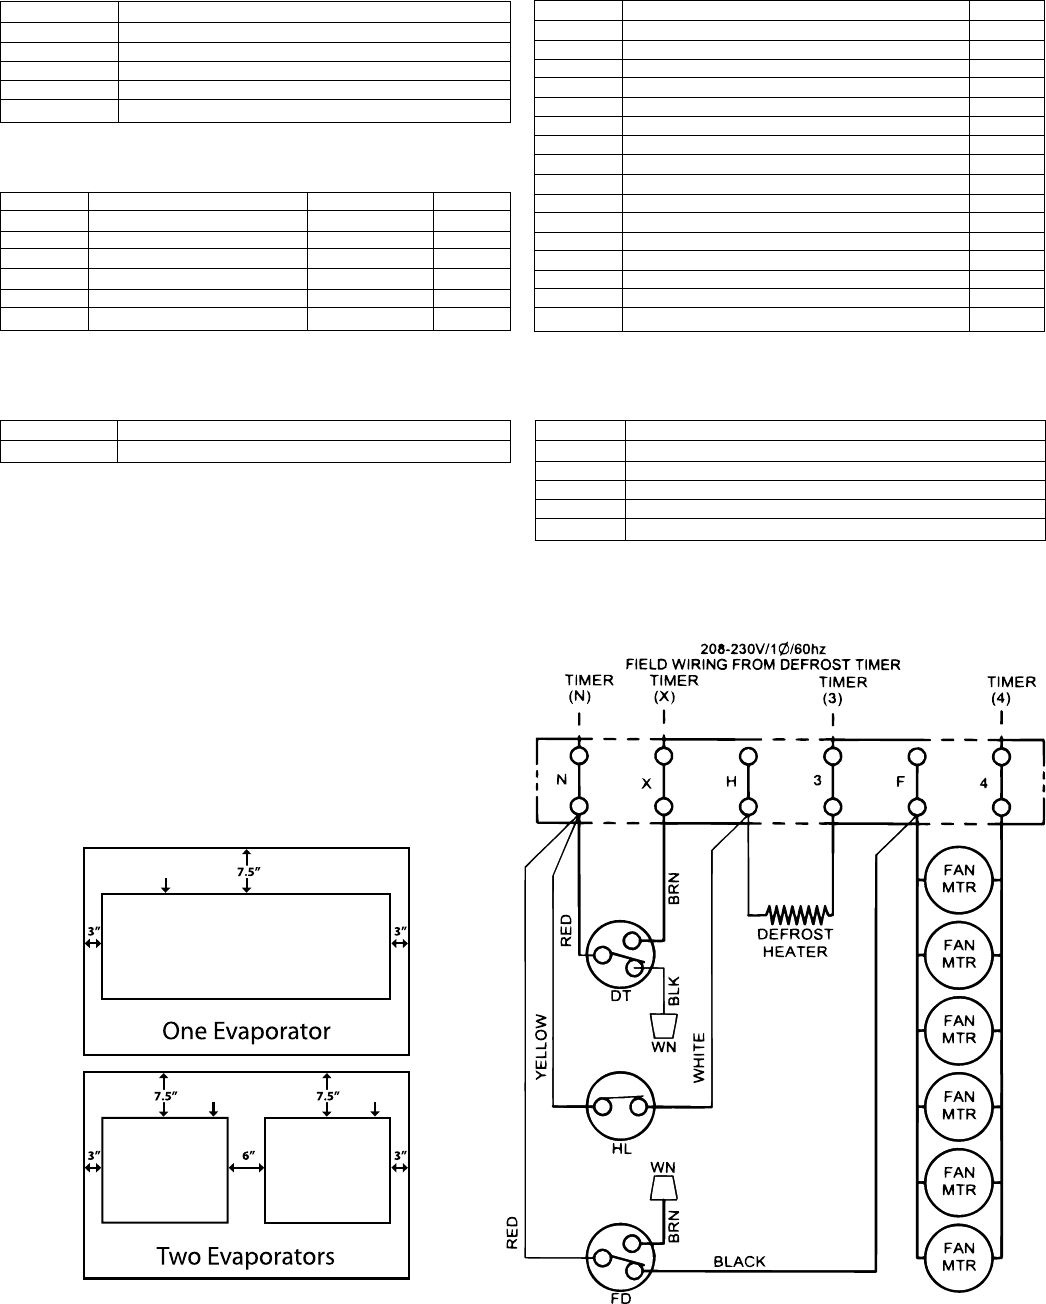 2f271777 ed48 431c affa 693c84f3fb6b bgb?resize\=665%2C829 copeland compressor wiring diagrams imusa rice cooker instructions cbb65a-1 wiring diagram at suagrazia.org